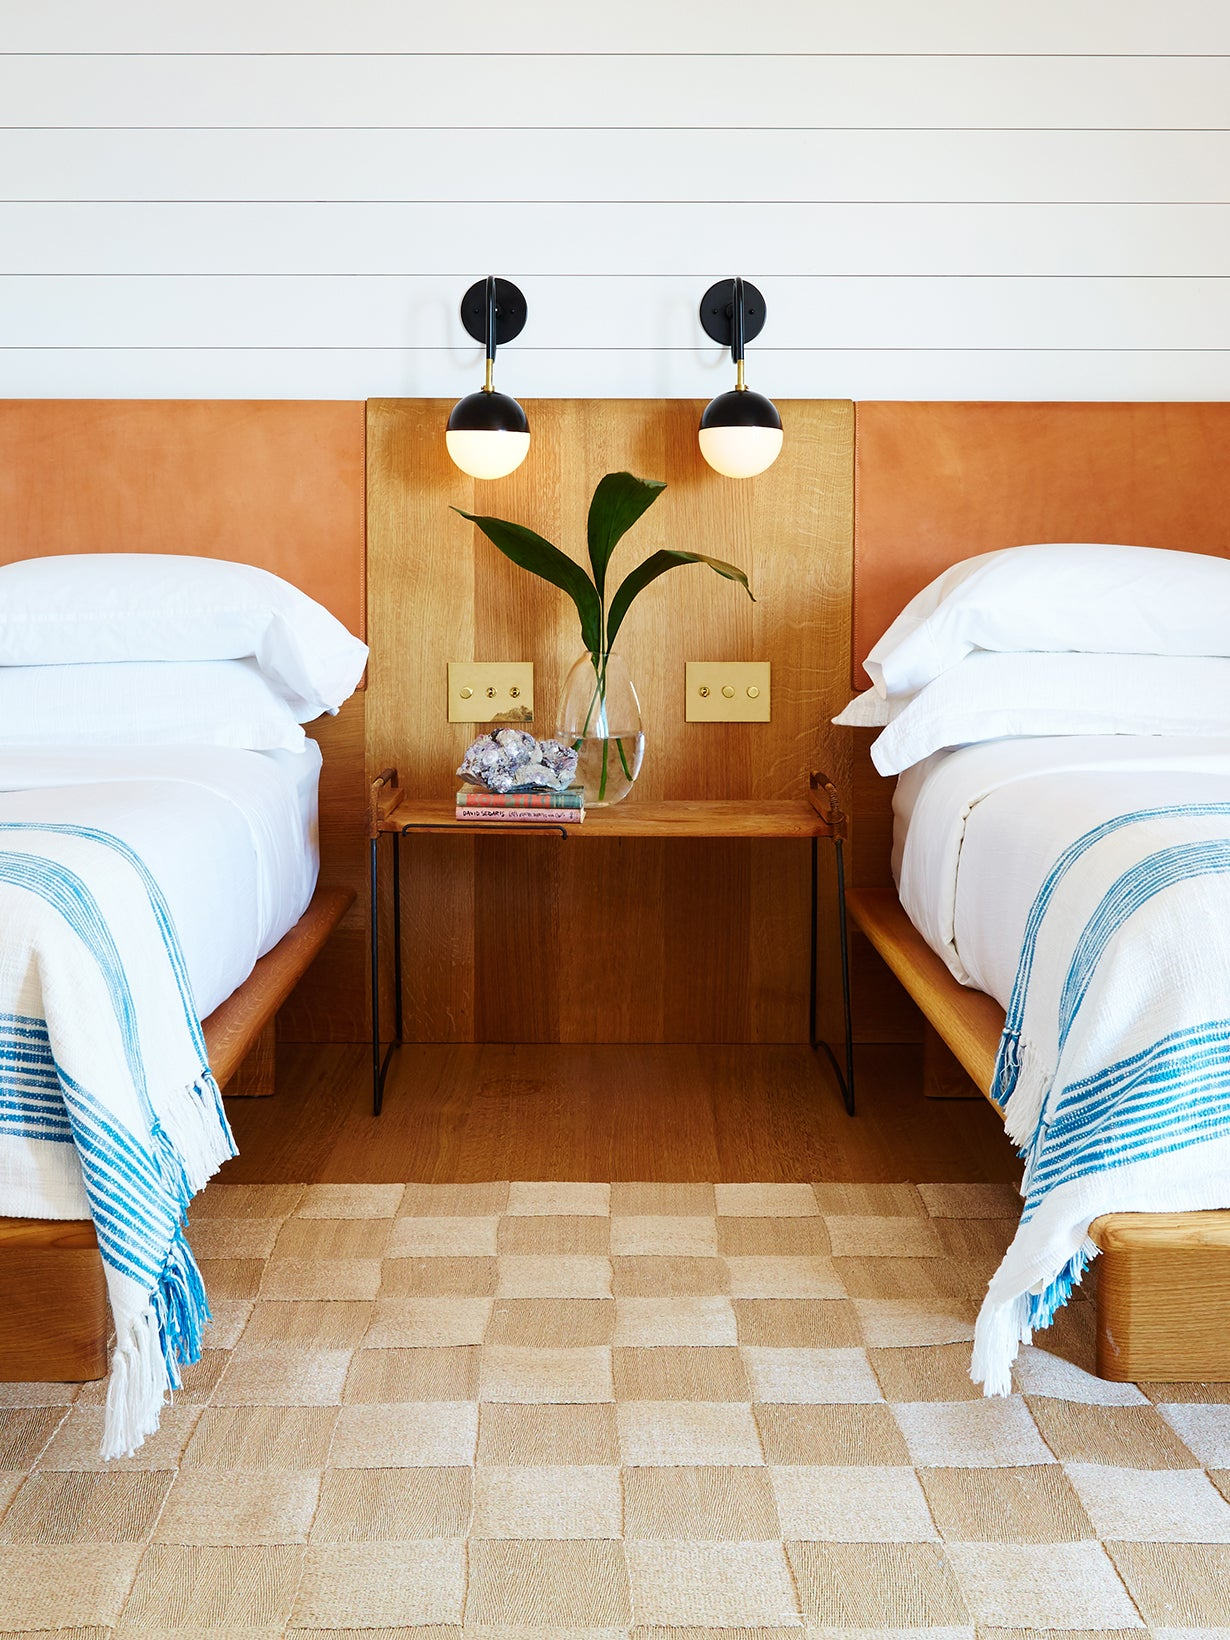 00-FEATURE-chic-double-beds-domino-3×4